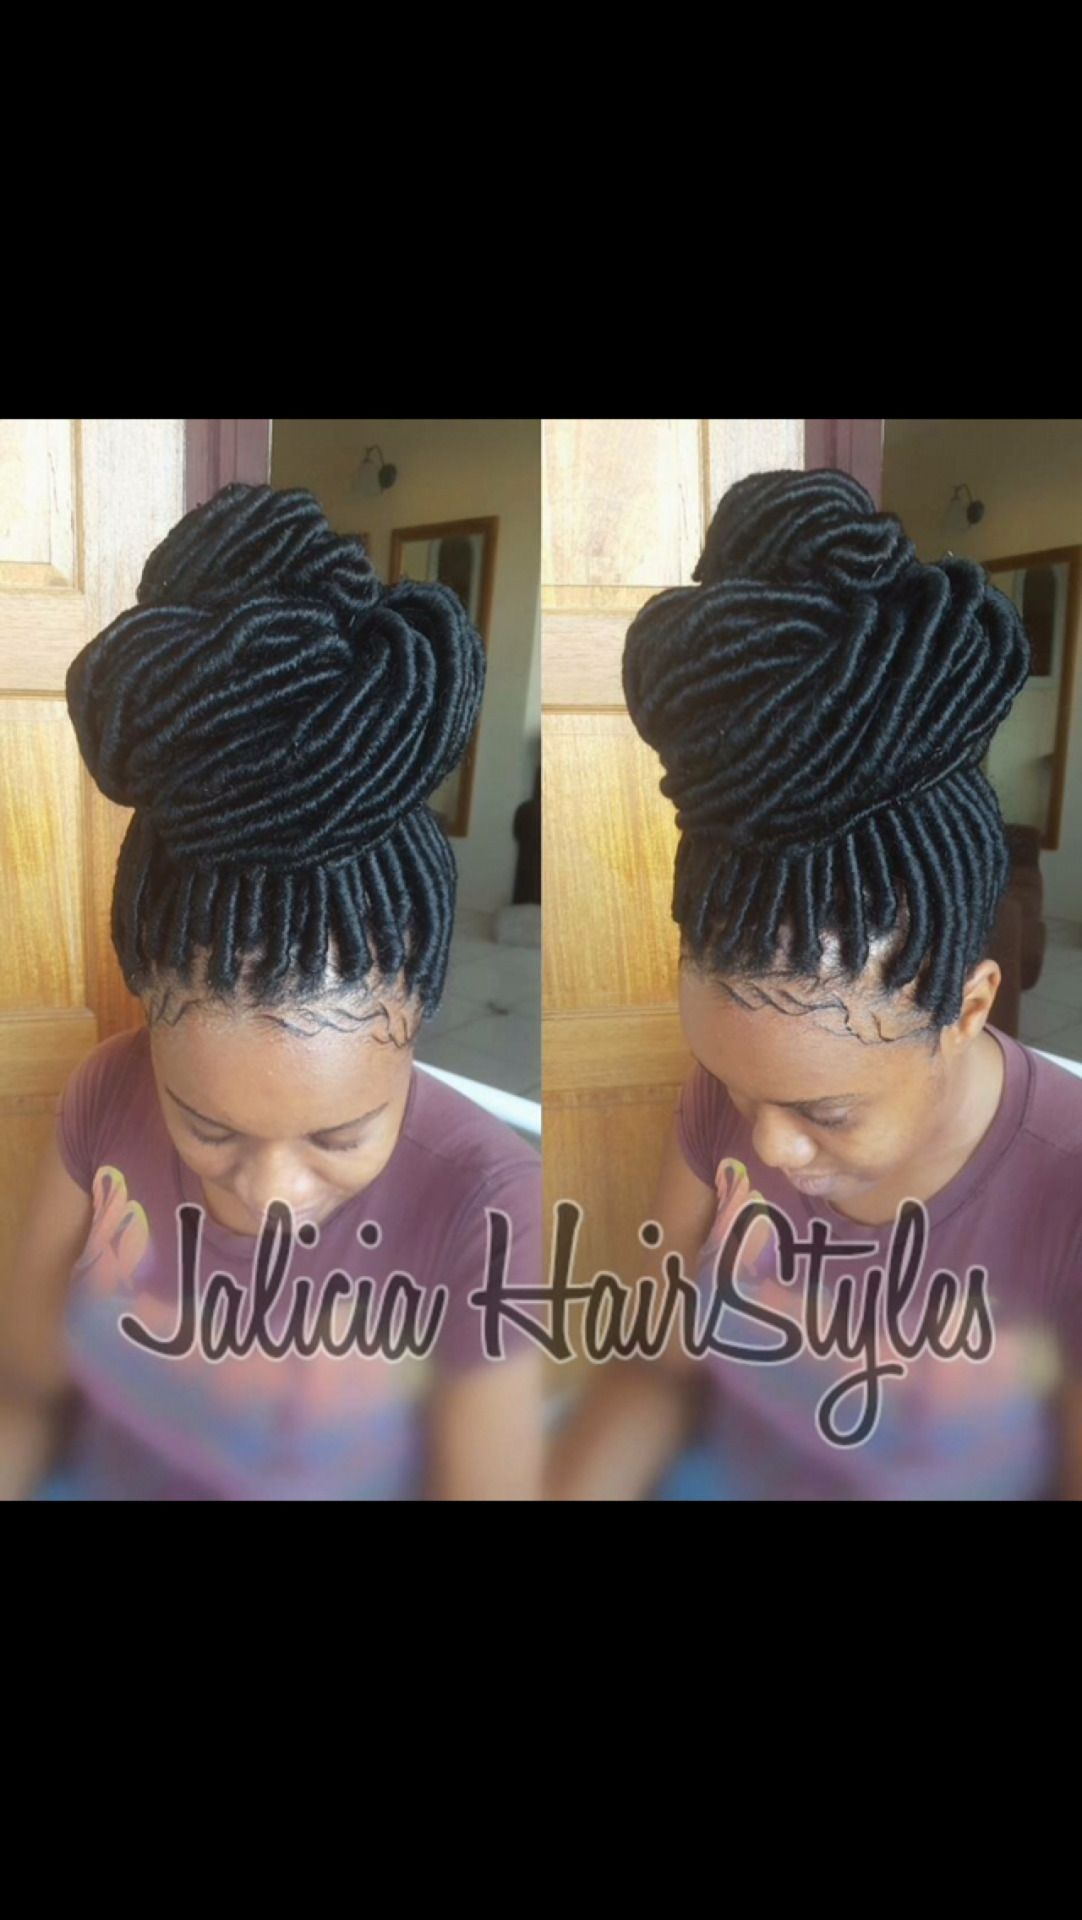 Twist Braids Hairstyles hairstyleforblackwomen.net 8